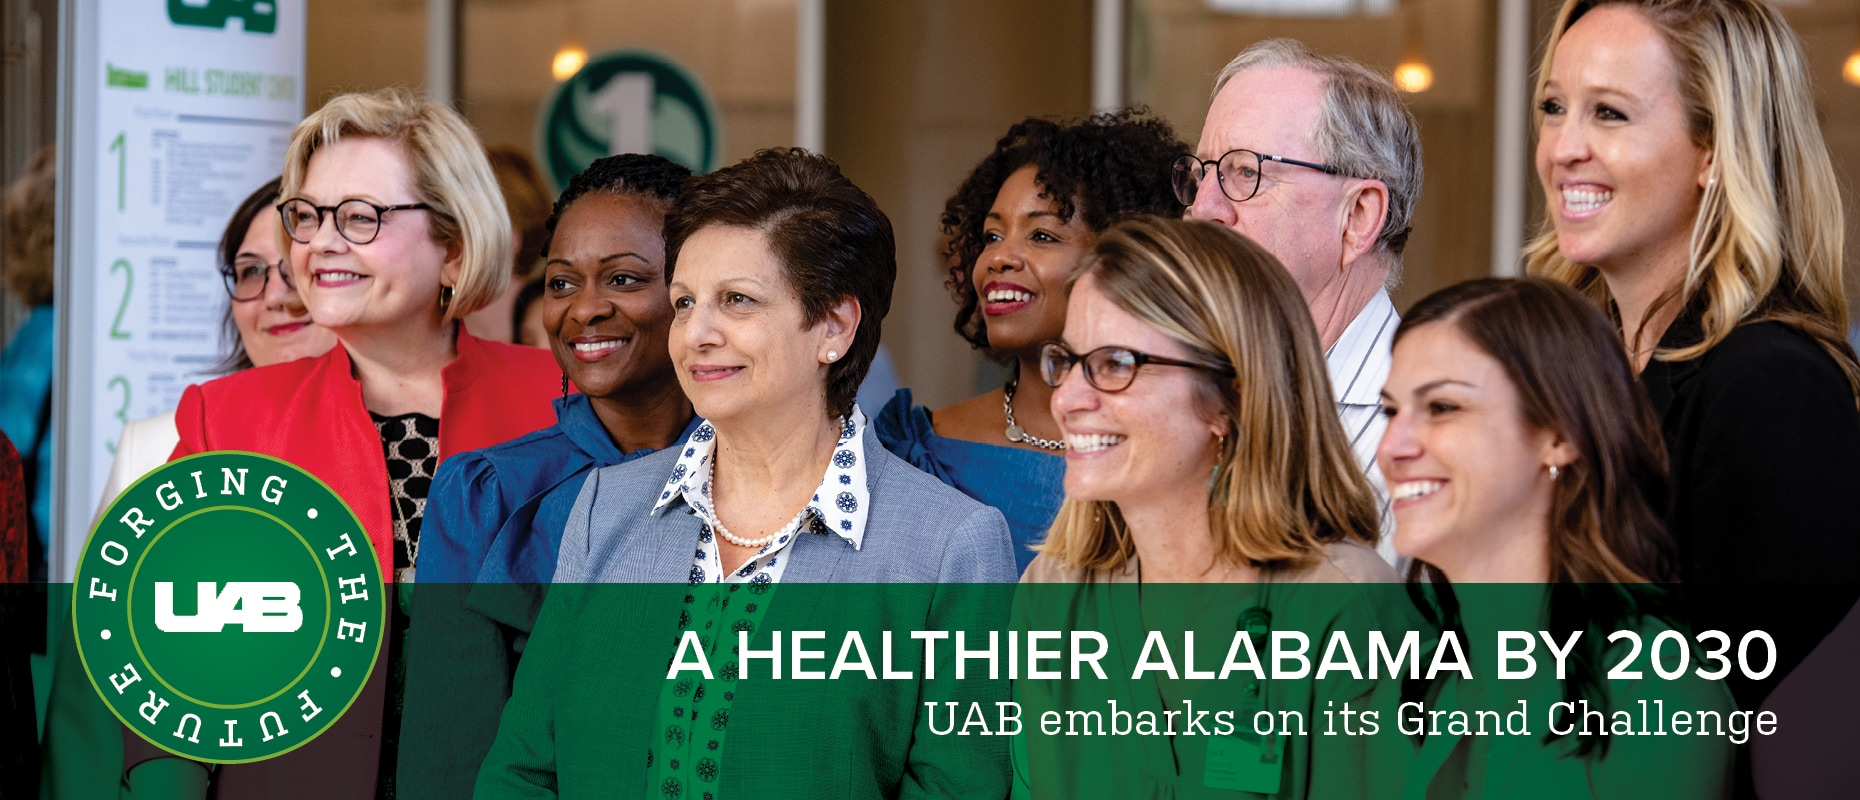 UAB Grand Challenge: A healthier Alabama by 2030